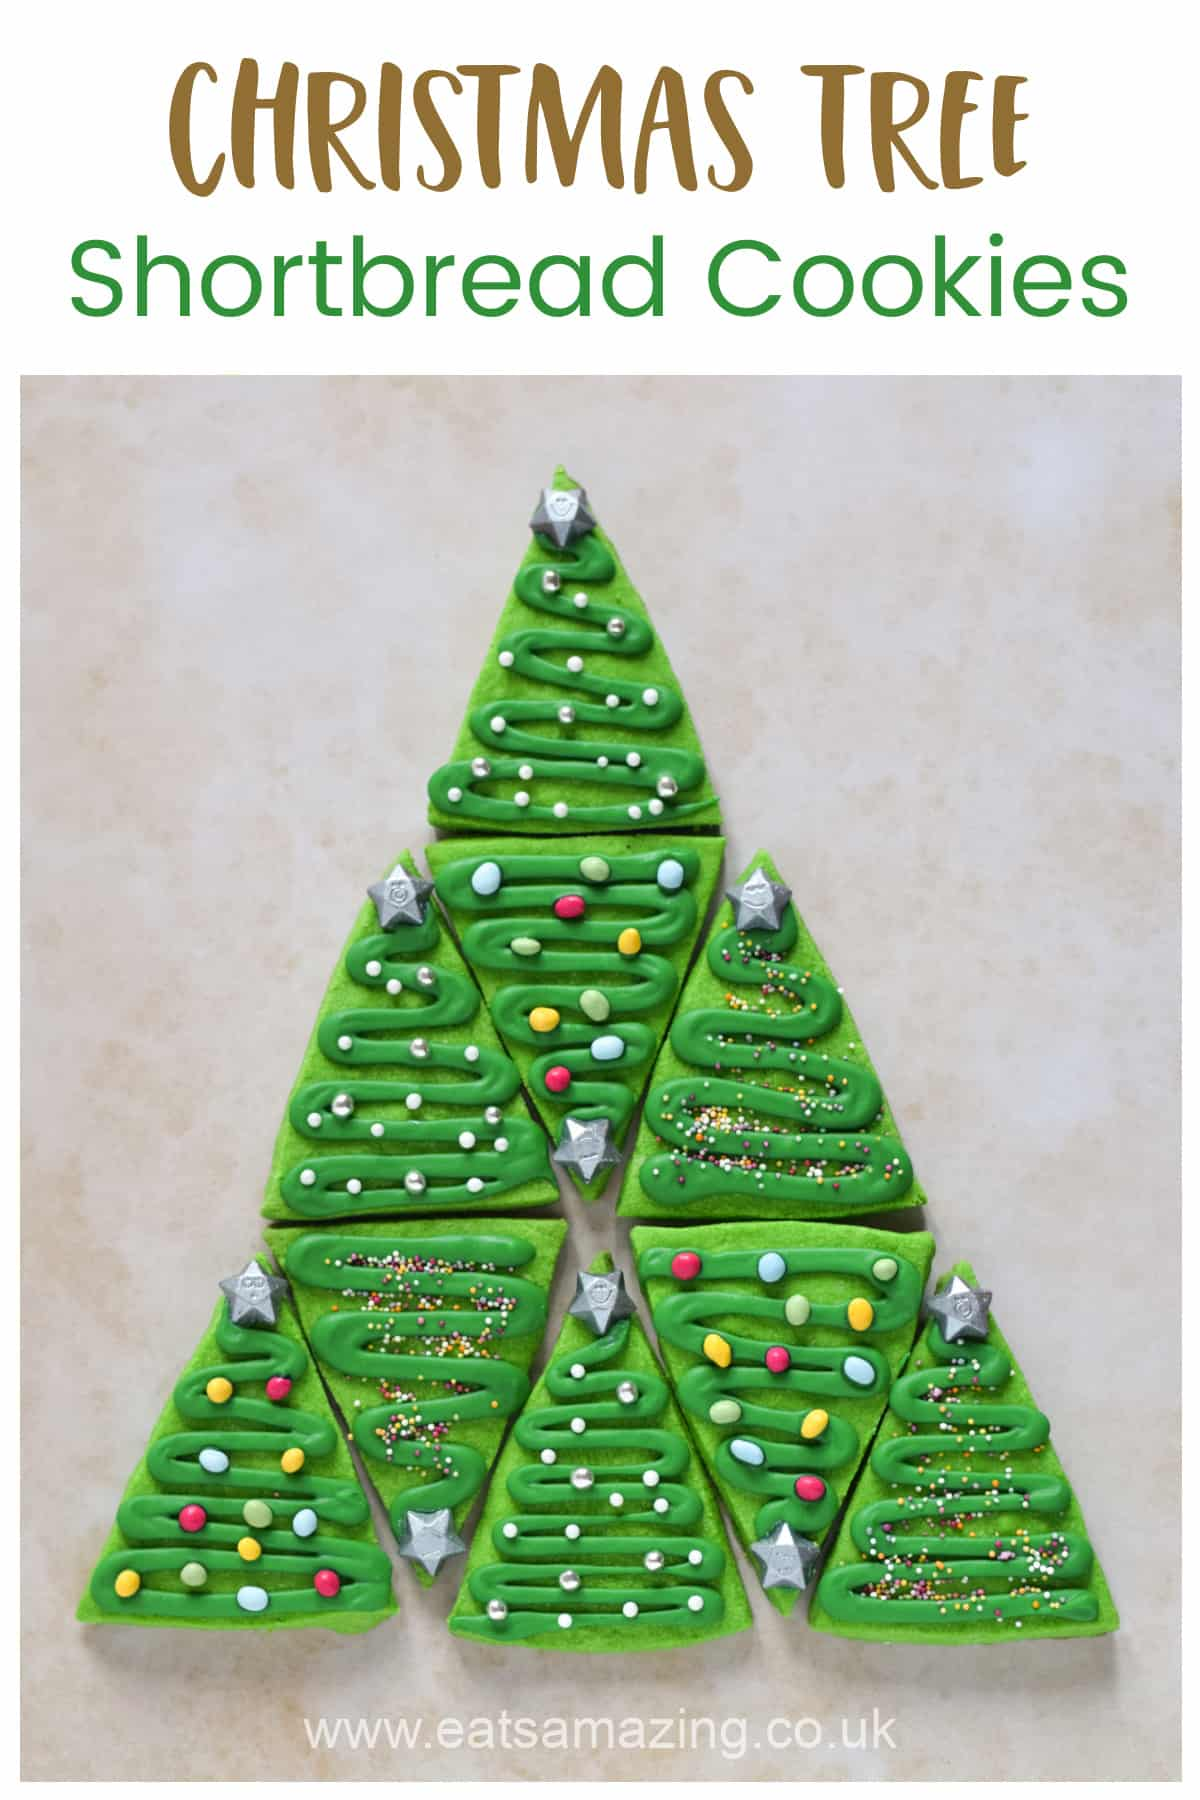 Easy shortbread Christmas tree cookies recipe - cute Christmas baking idea for kids